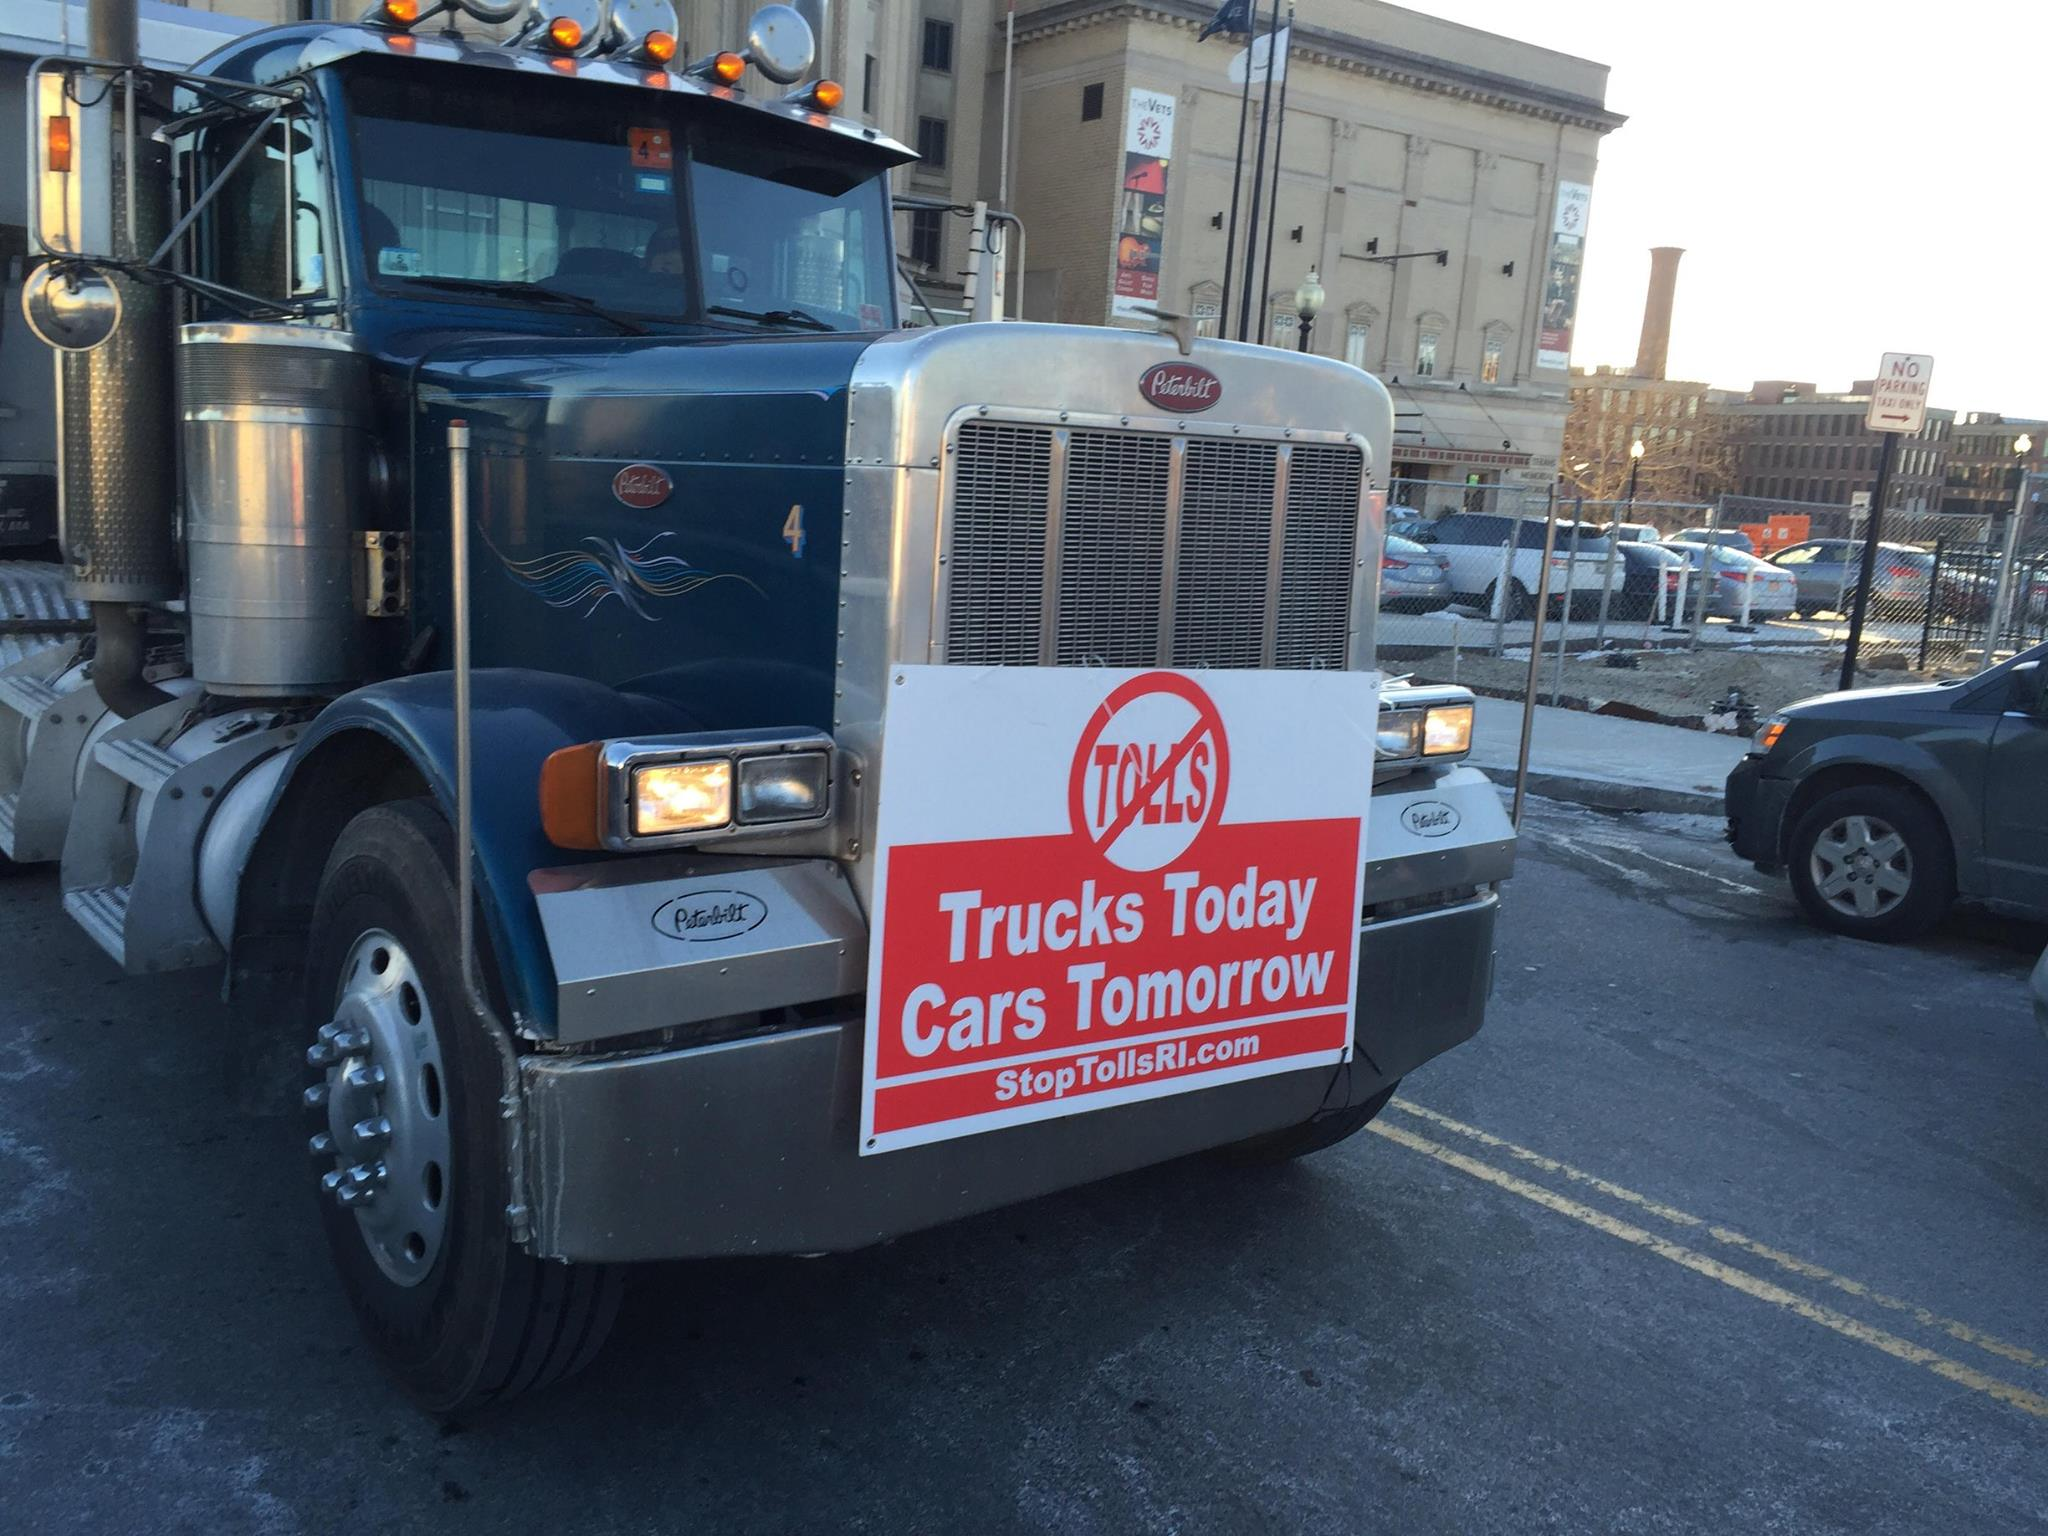 """Patricia Morgan:  """"They said that they had crunched the numbers and they were positive they were correct. They testified that their truck tolling scheme would hold up in court. They lied."""""""